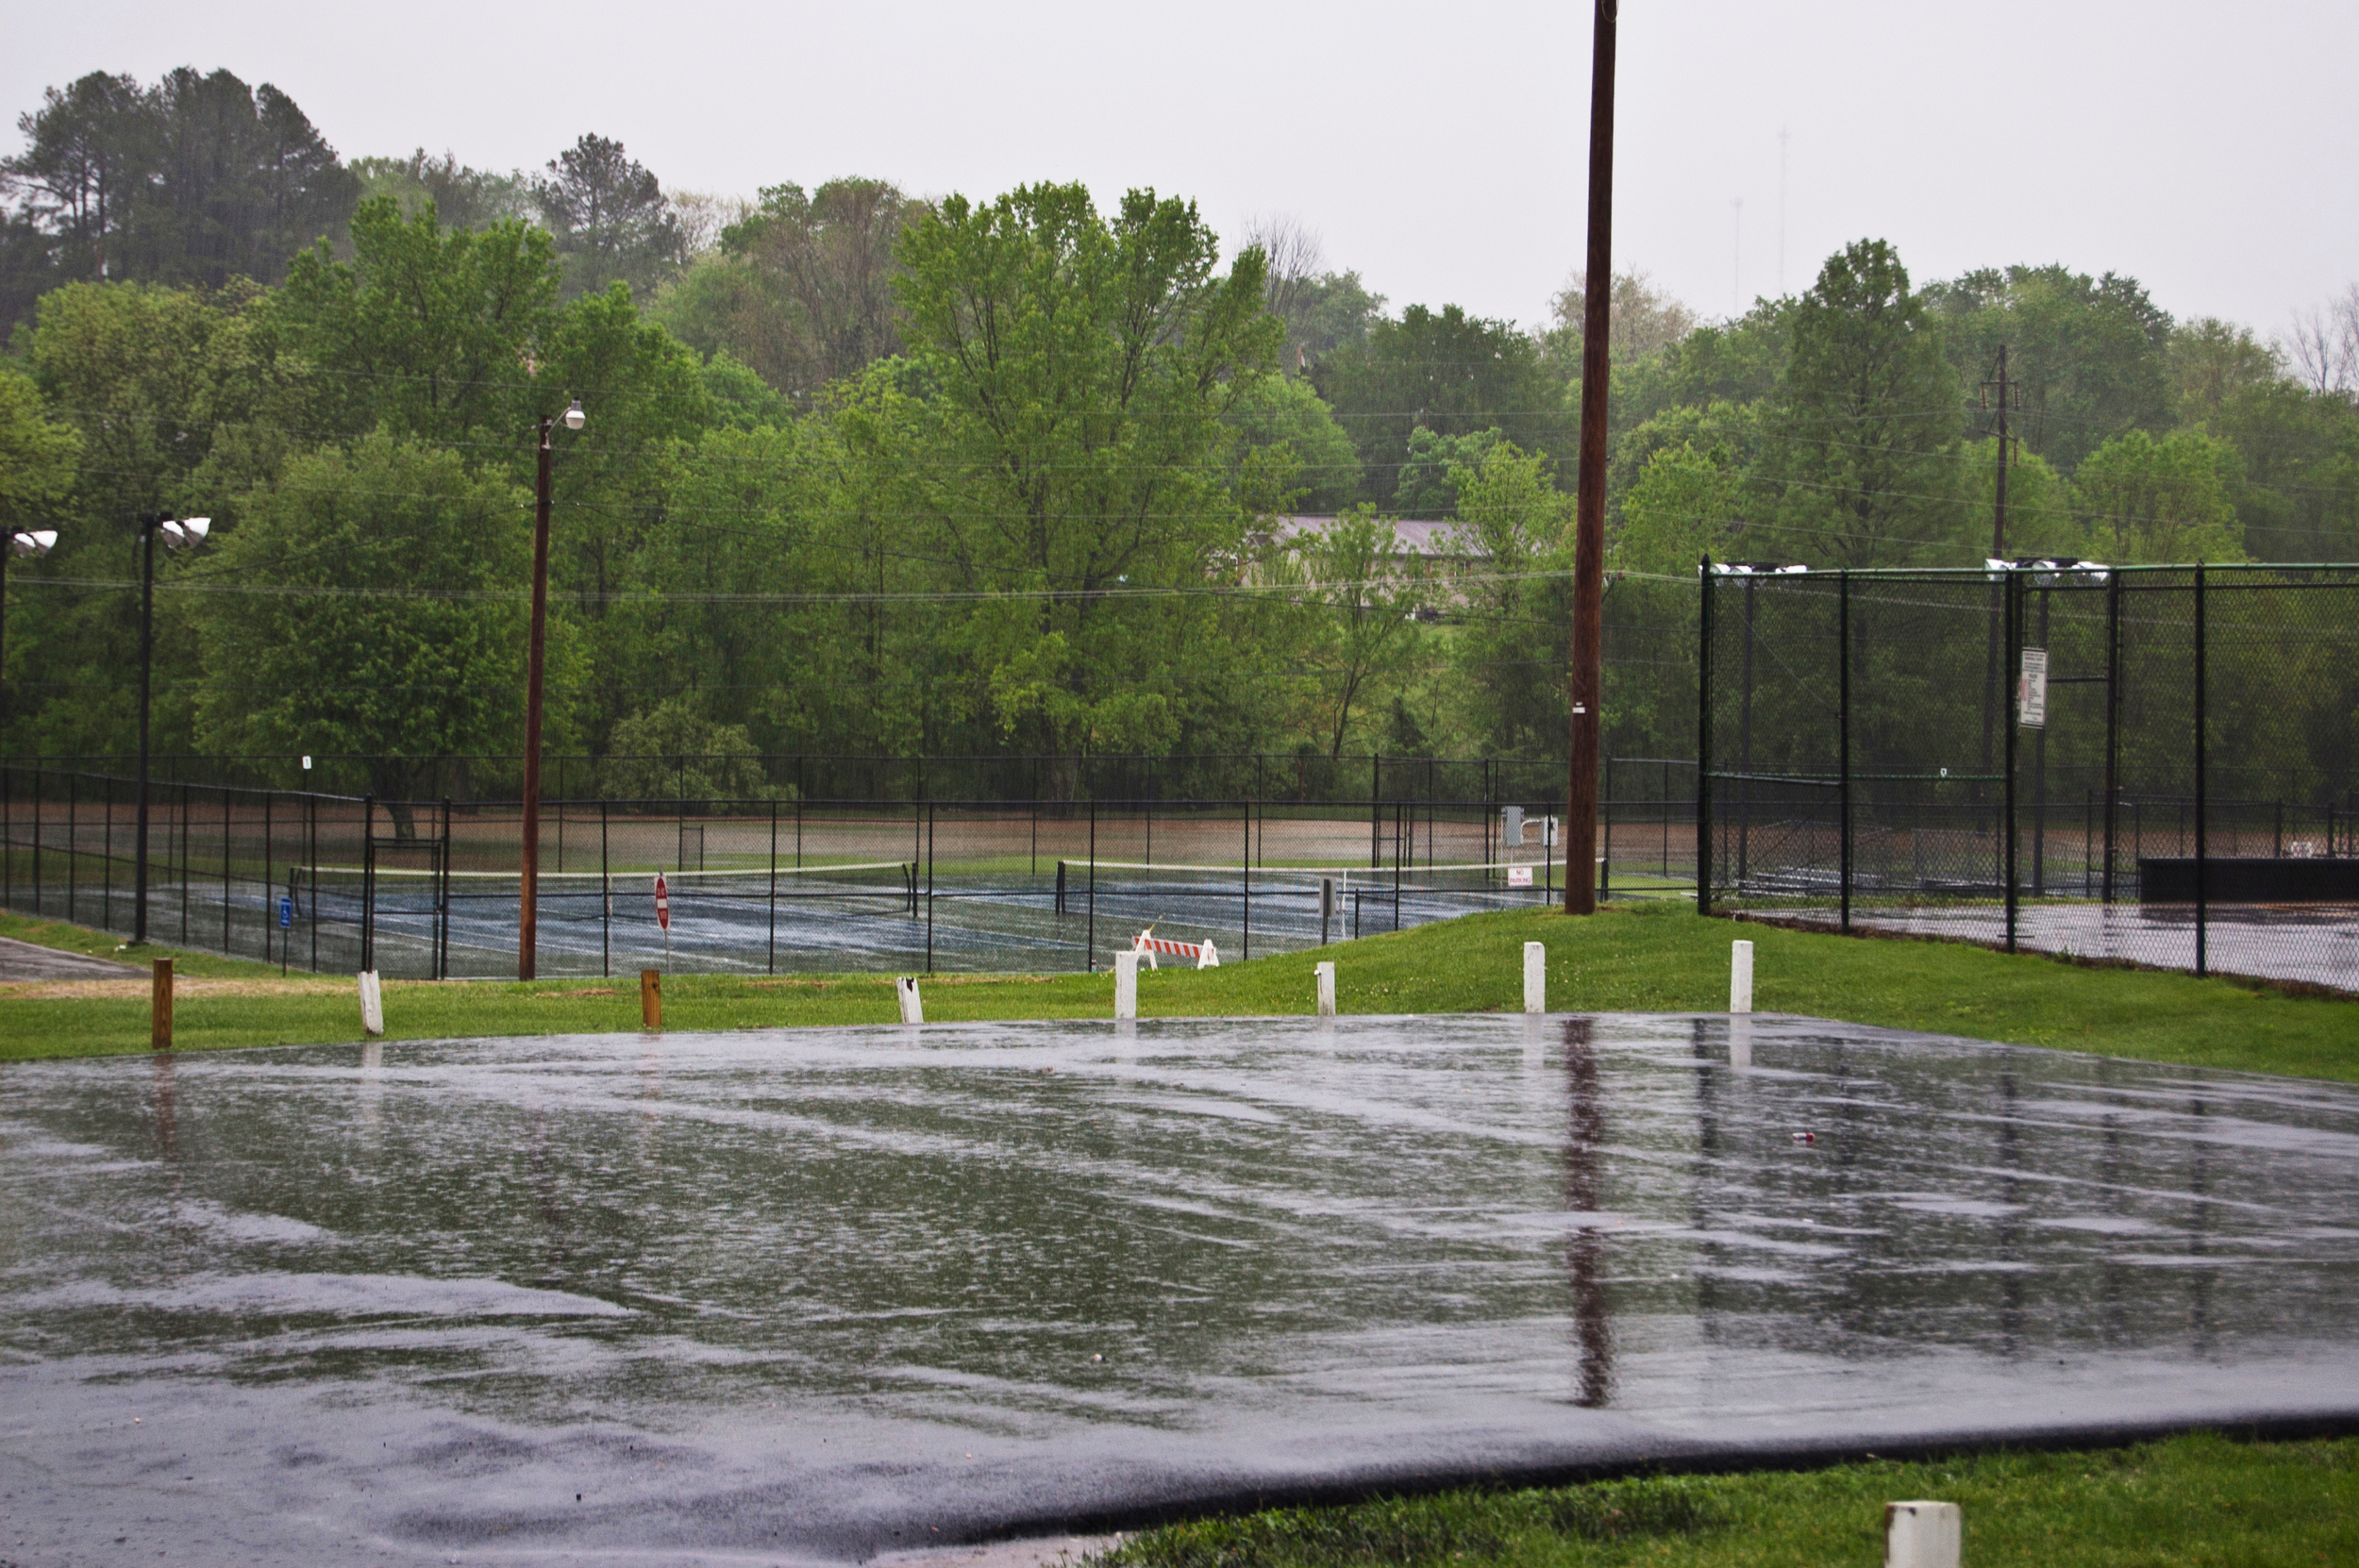 View of Gorin Park flooding to the right of the substation.